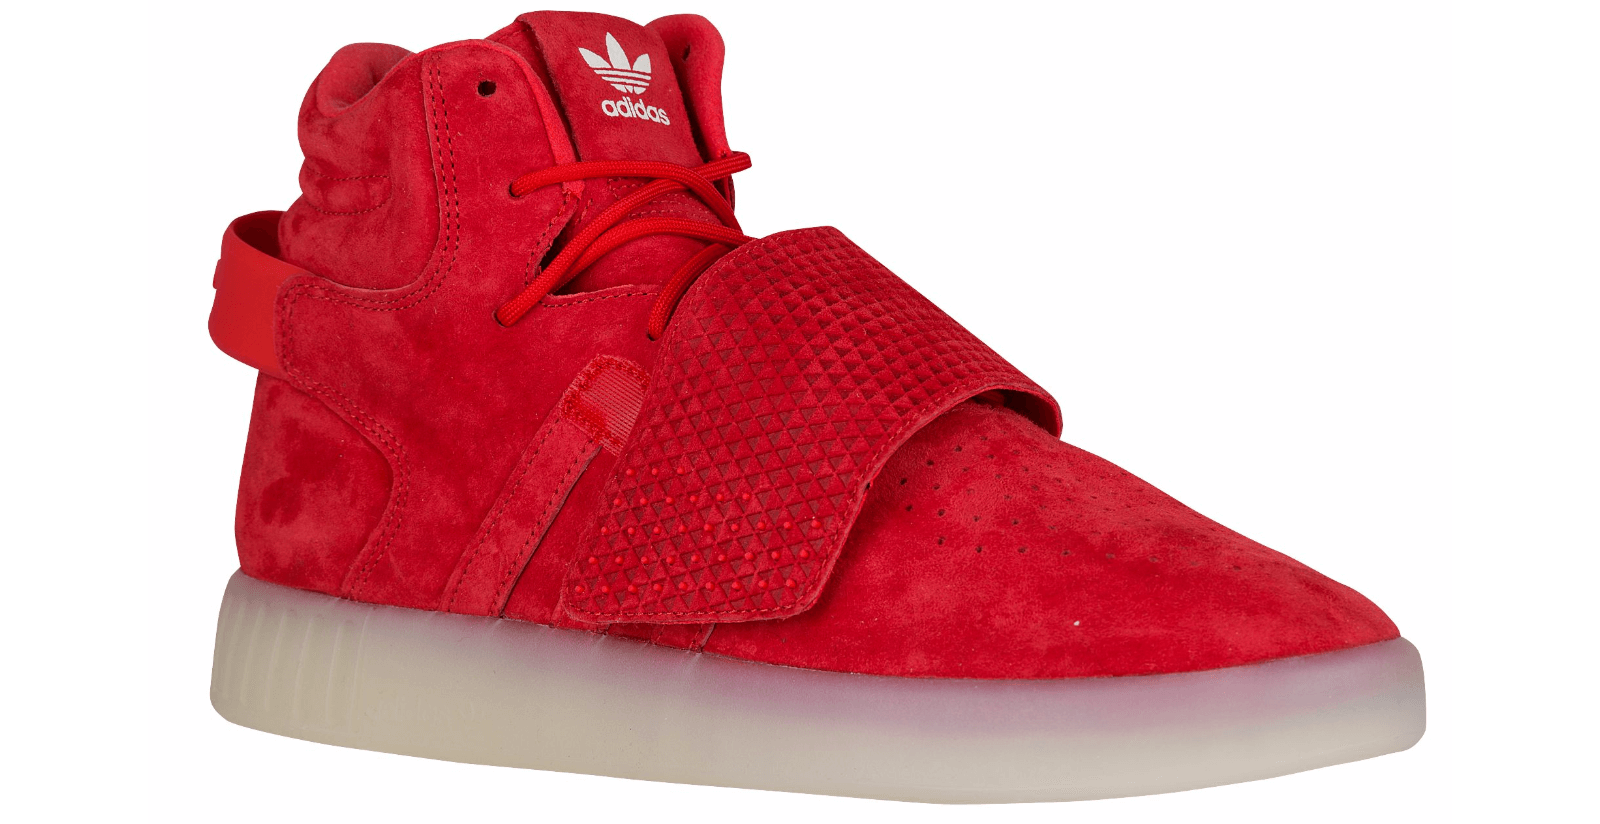 best website 6c112 7a3a5 Adidas Tubular Invader Strap ( Yeezy Inspired) BB5039 (Red ...